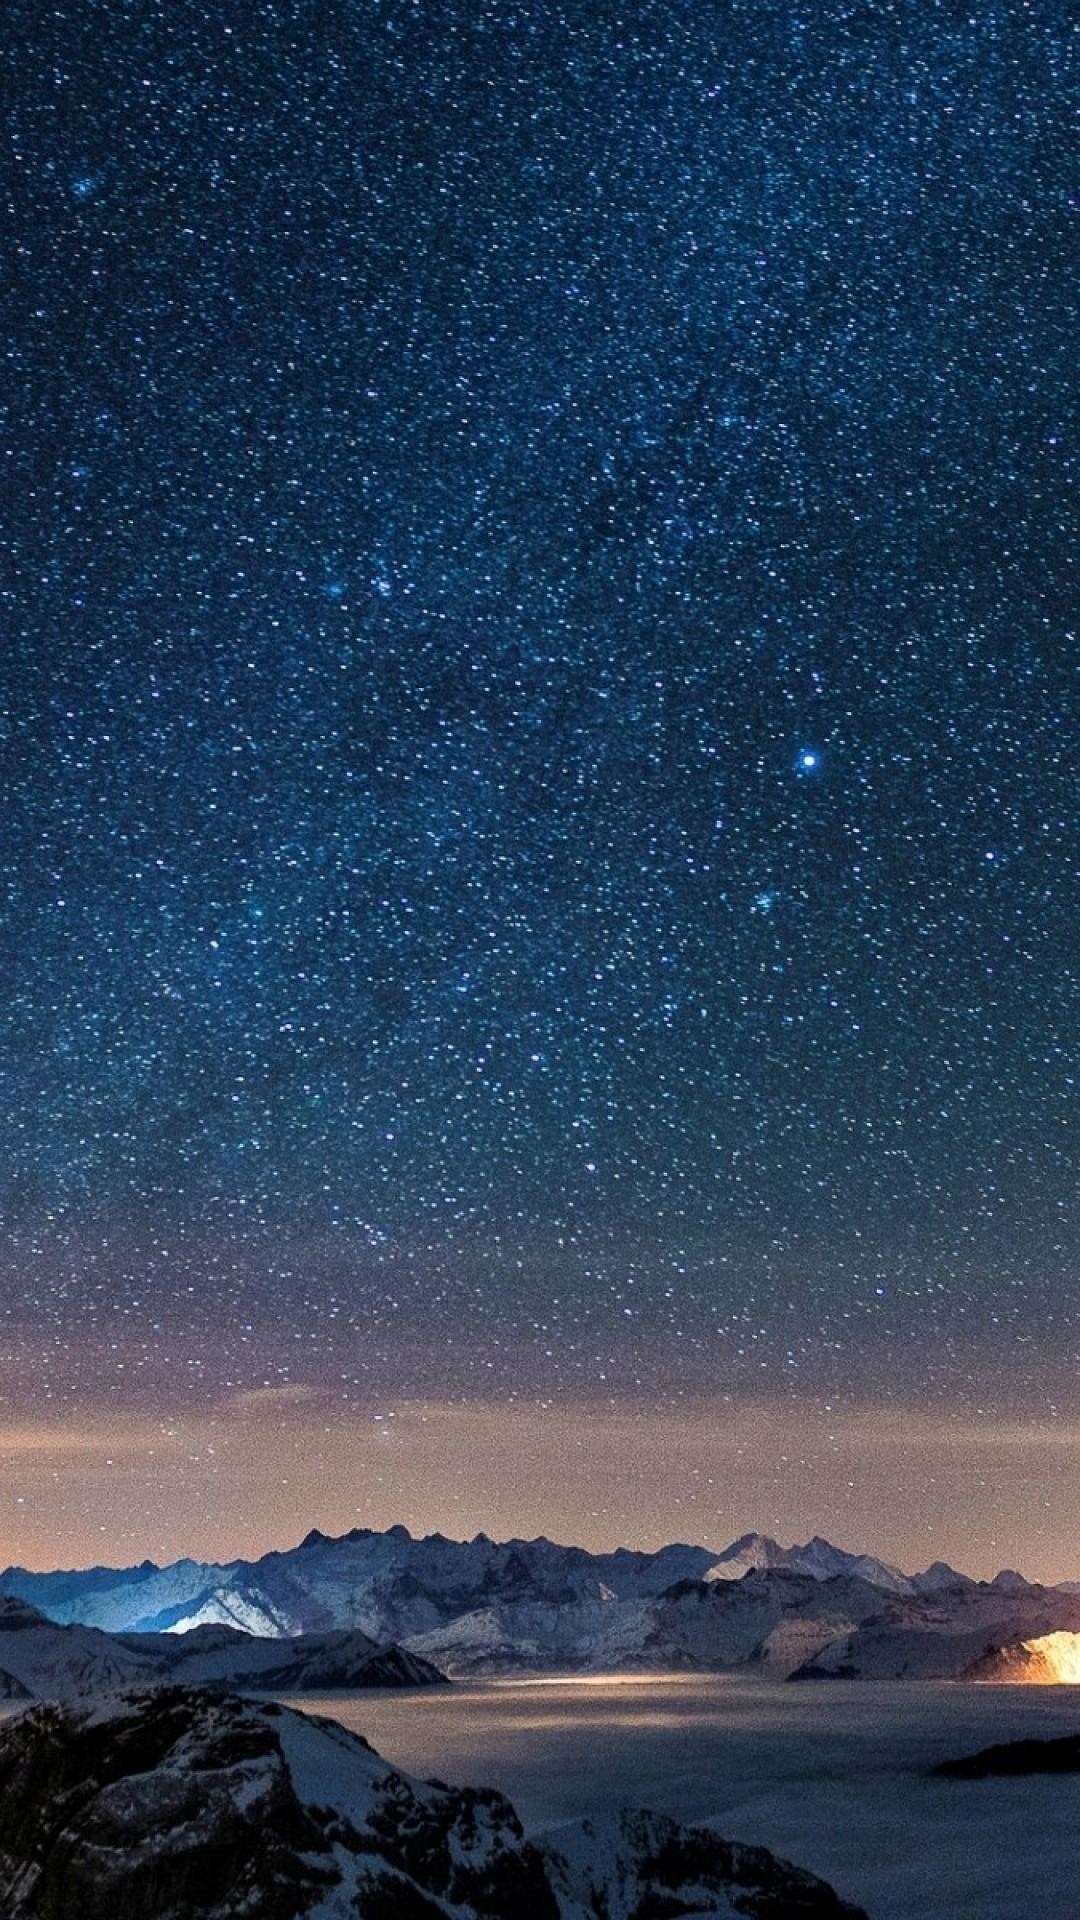 Starry Sky iphone wallpaper high quality